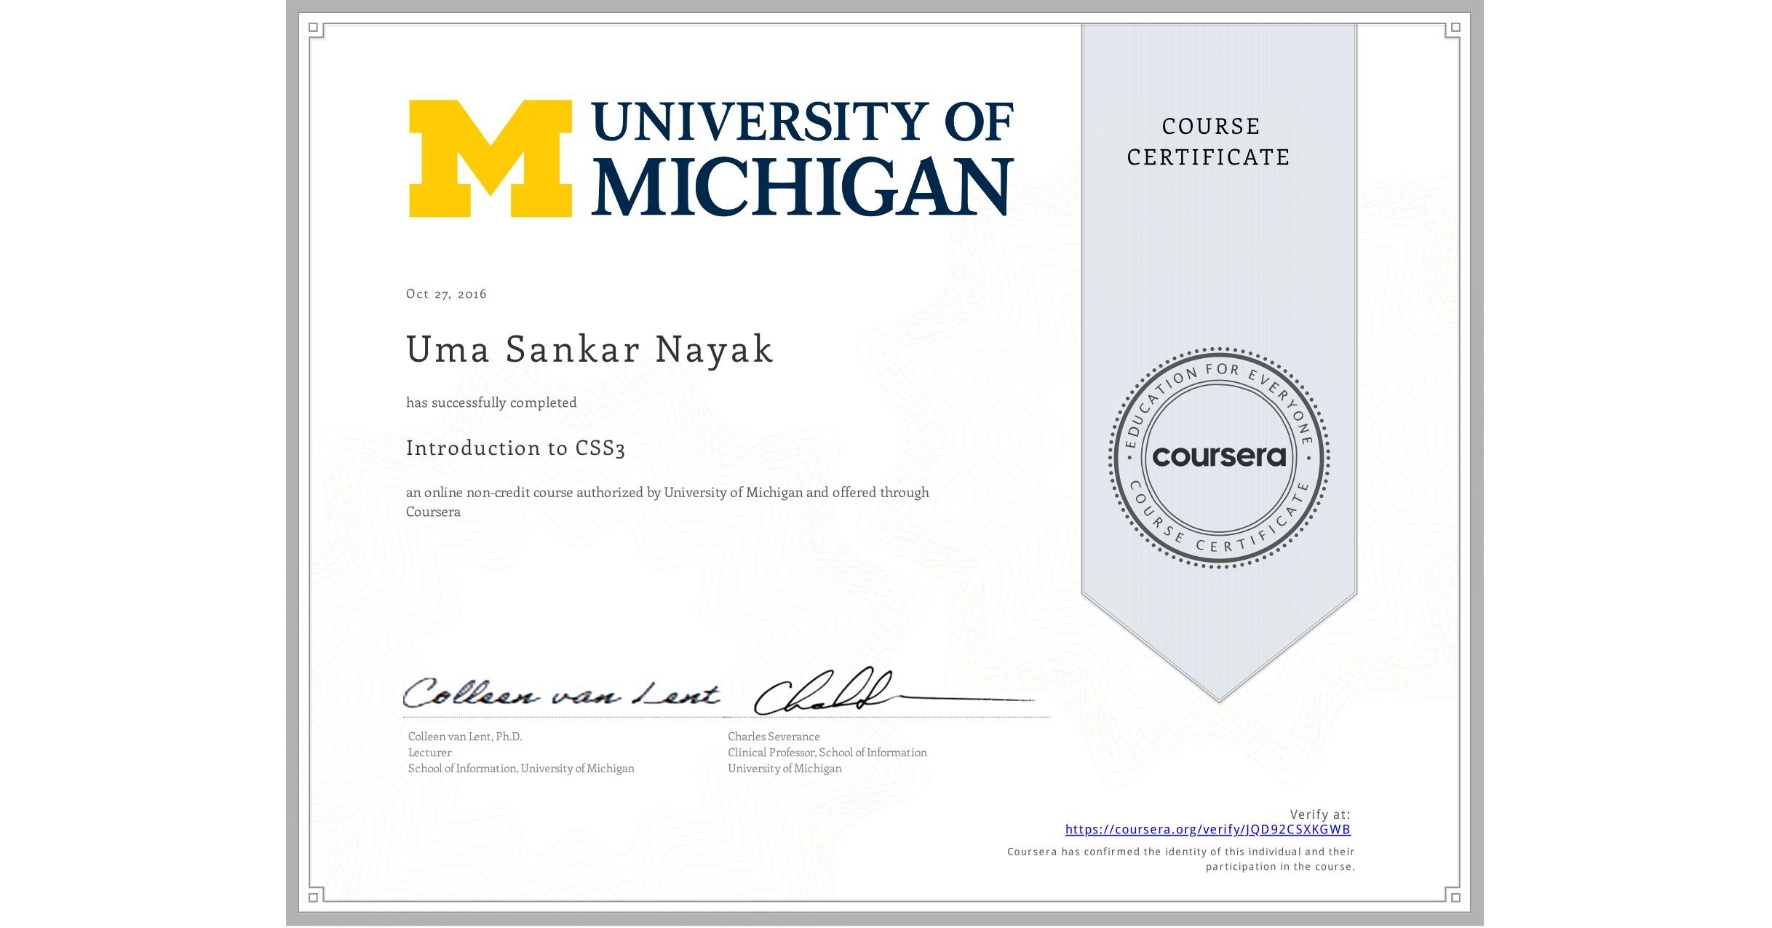 View certificate for Uma Sankar  Nayak, Introduction to CSS3, an online non-credit course authorized by University of Michigan and offered through Coursera